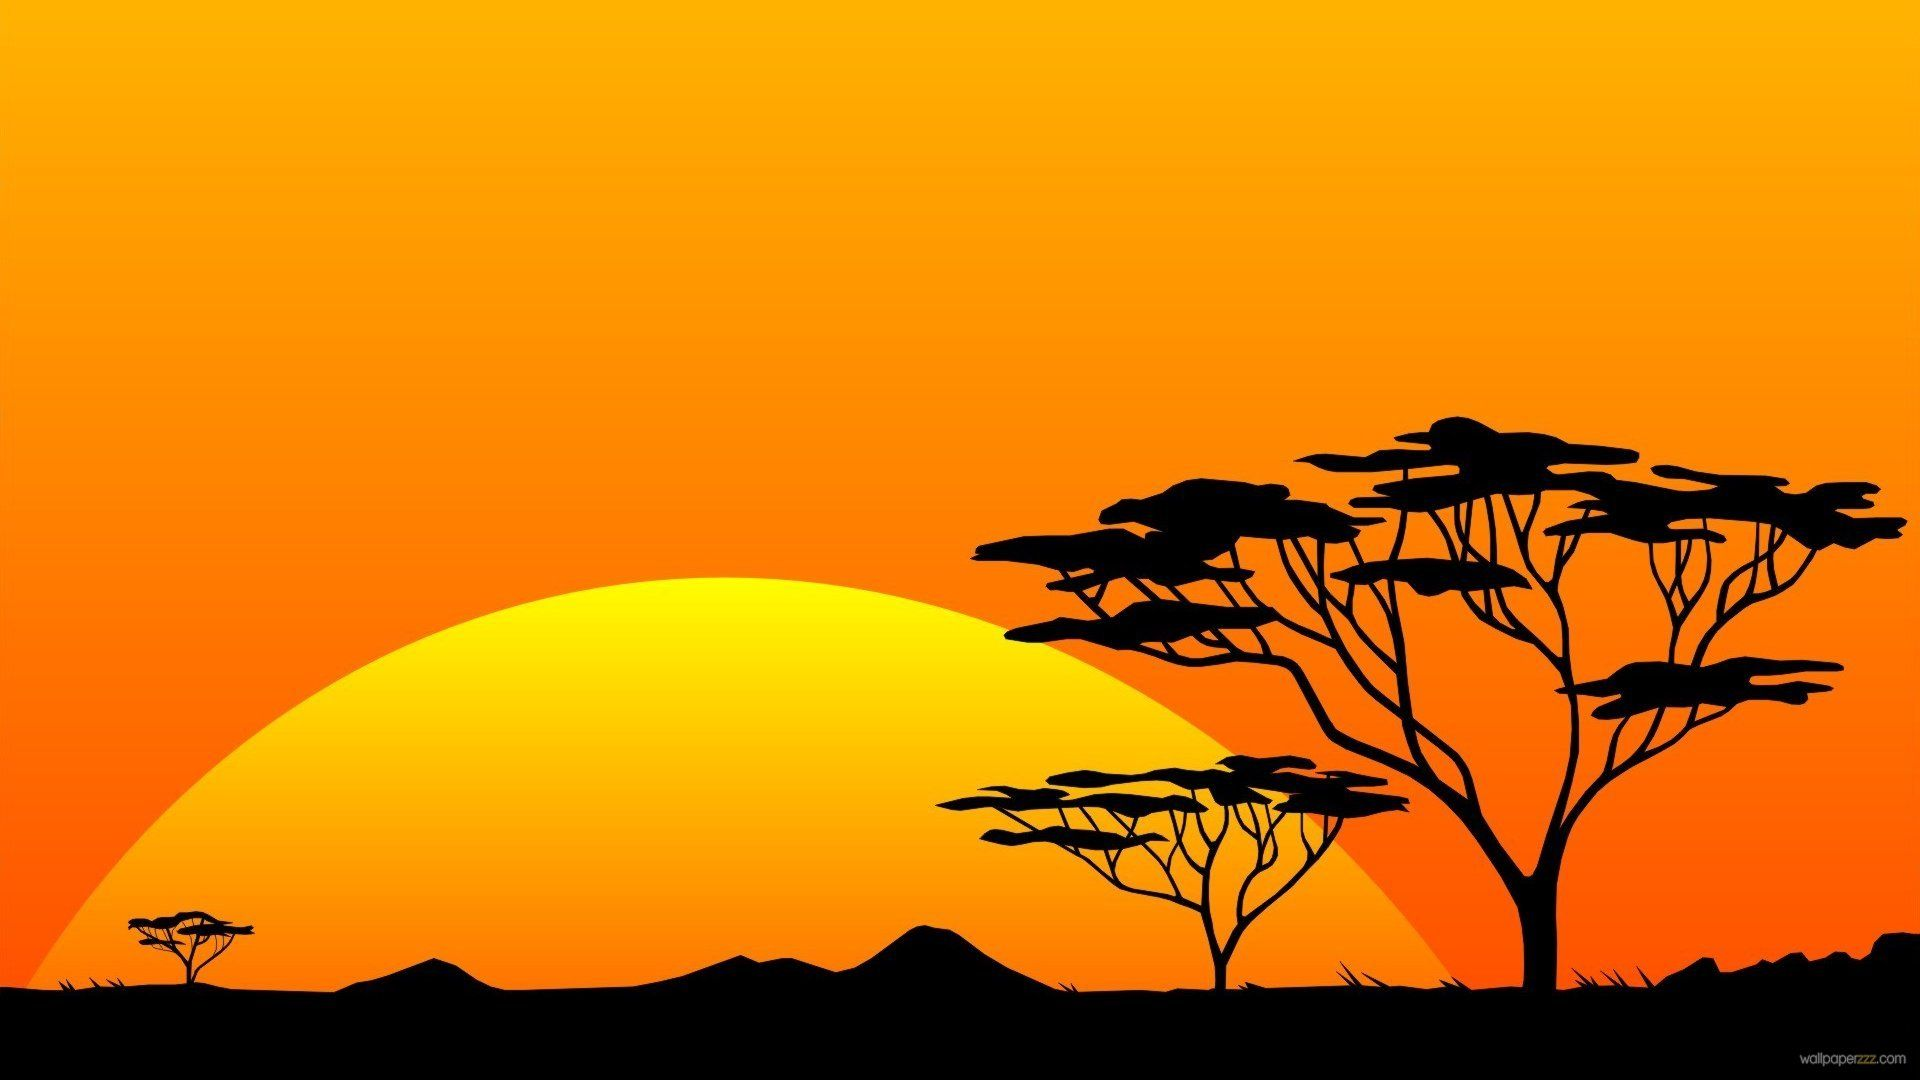 Sunset clipart sunset africa. African landscape wallpapers group